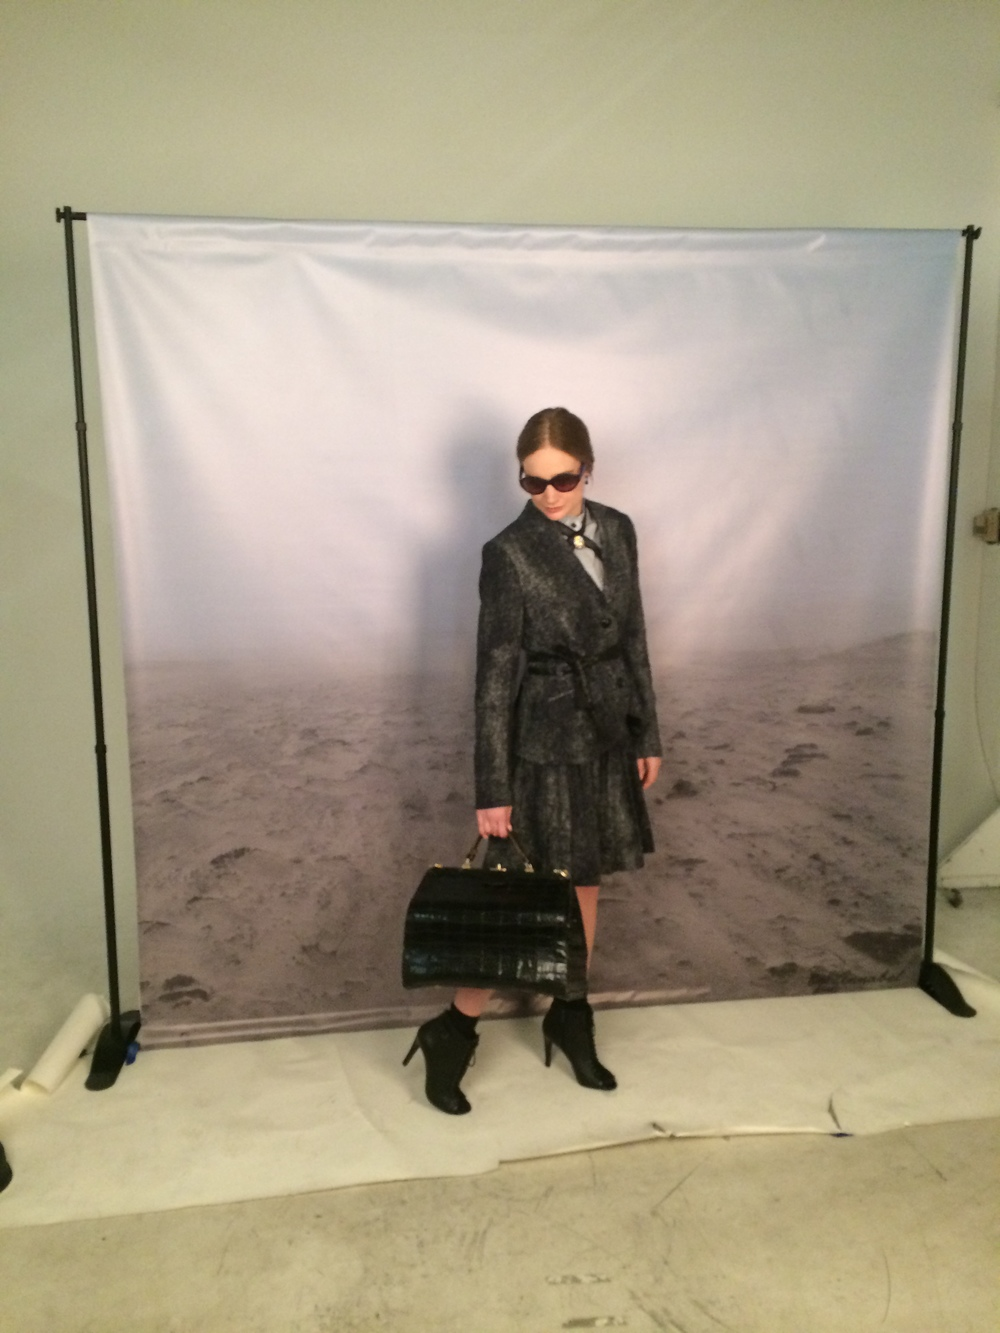 look 1: the arrival